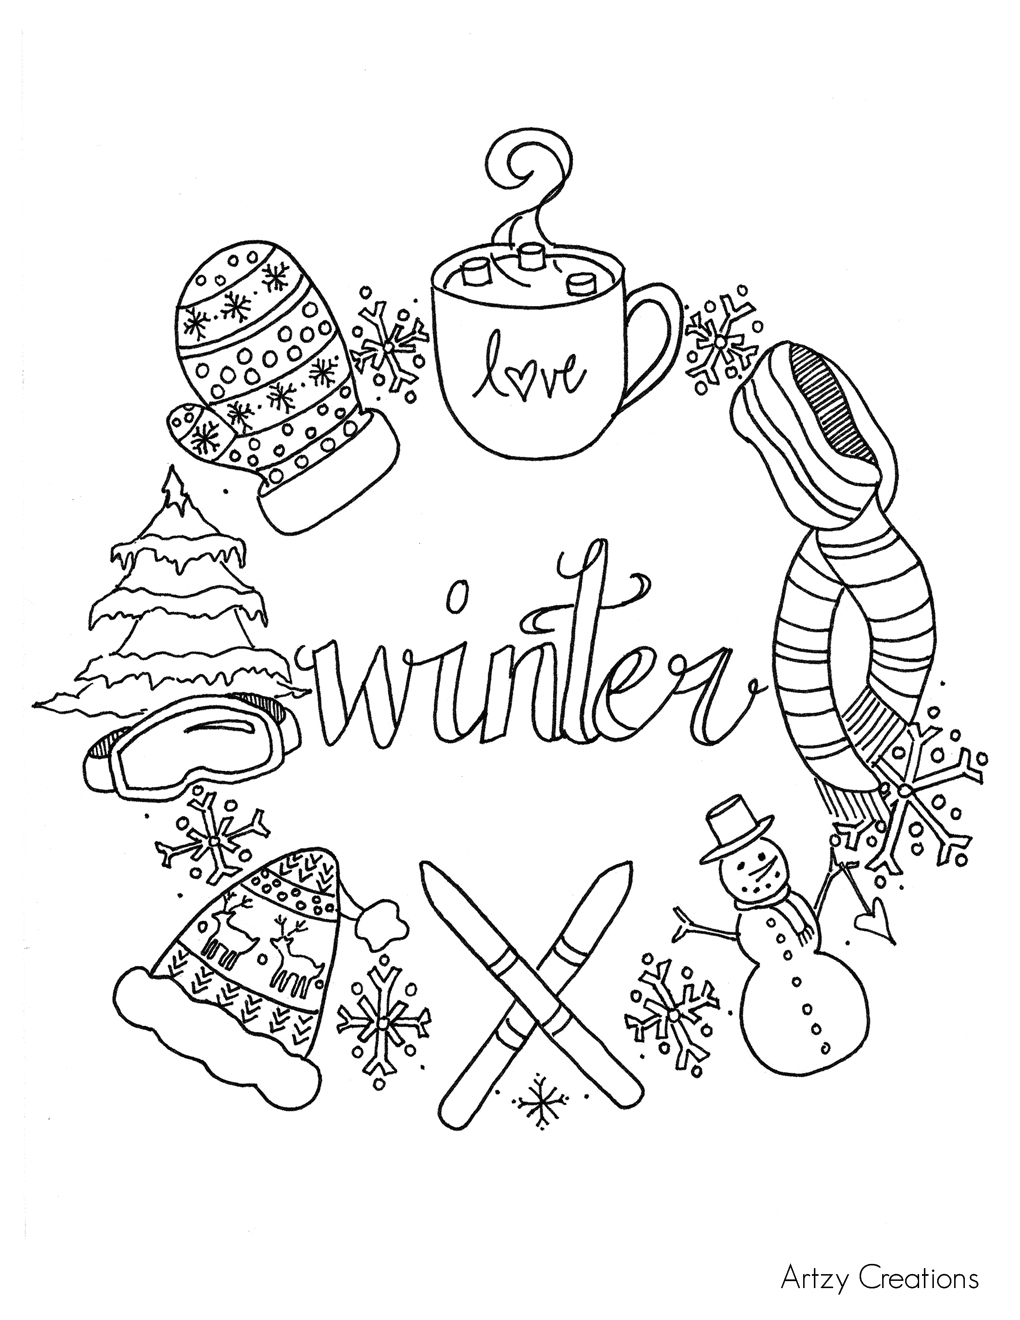 winter activities coloring pages | Free Winter Coloring Page - artzycreations.com